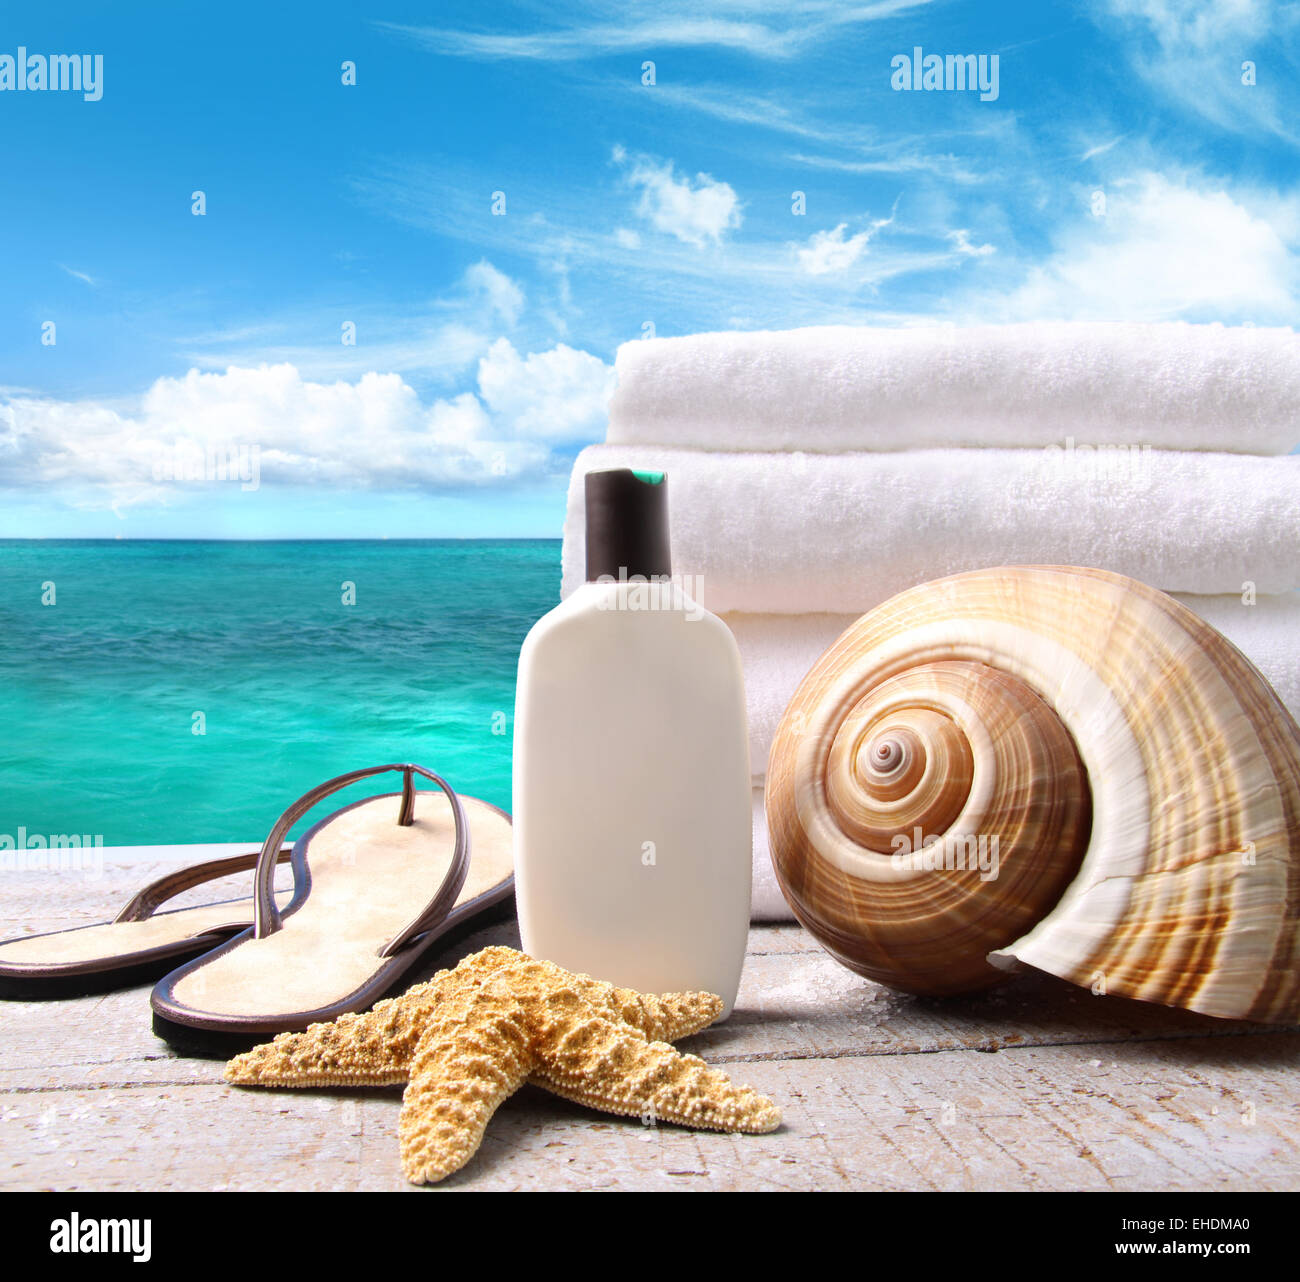 Sunblock lotion and towels and ocean scene - Stock Image